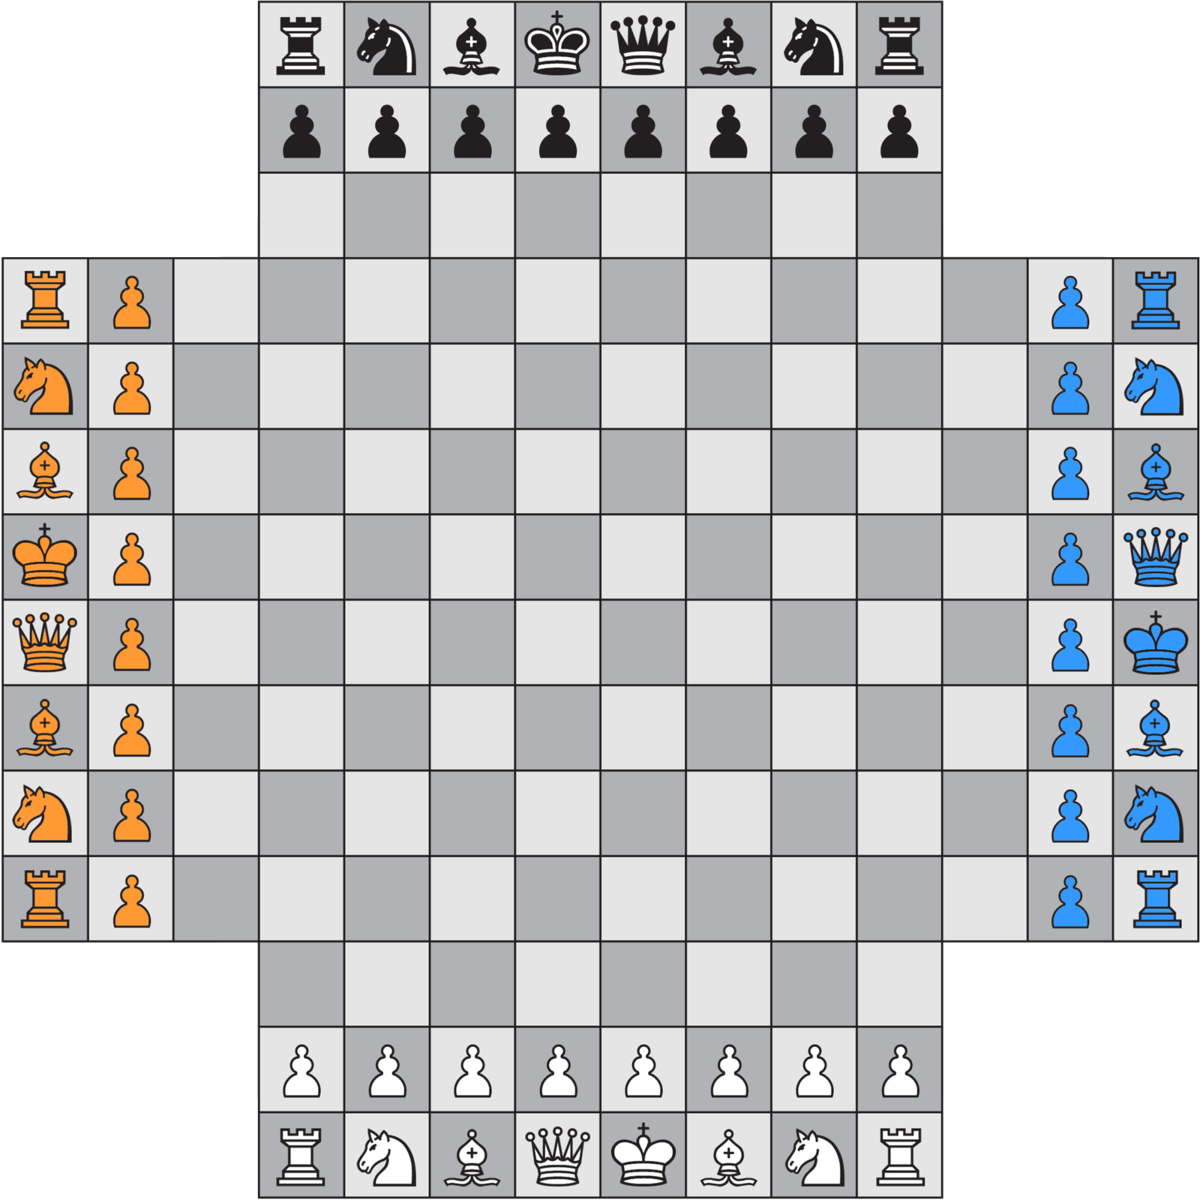 sc 1 st  Wikipedia & Four-player chess - Wikipedia